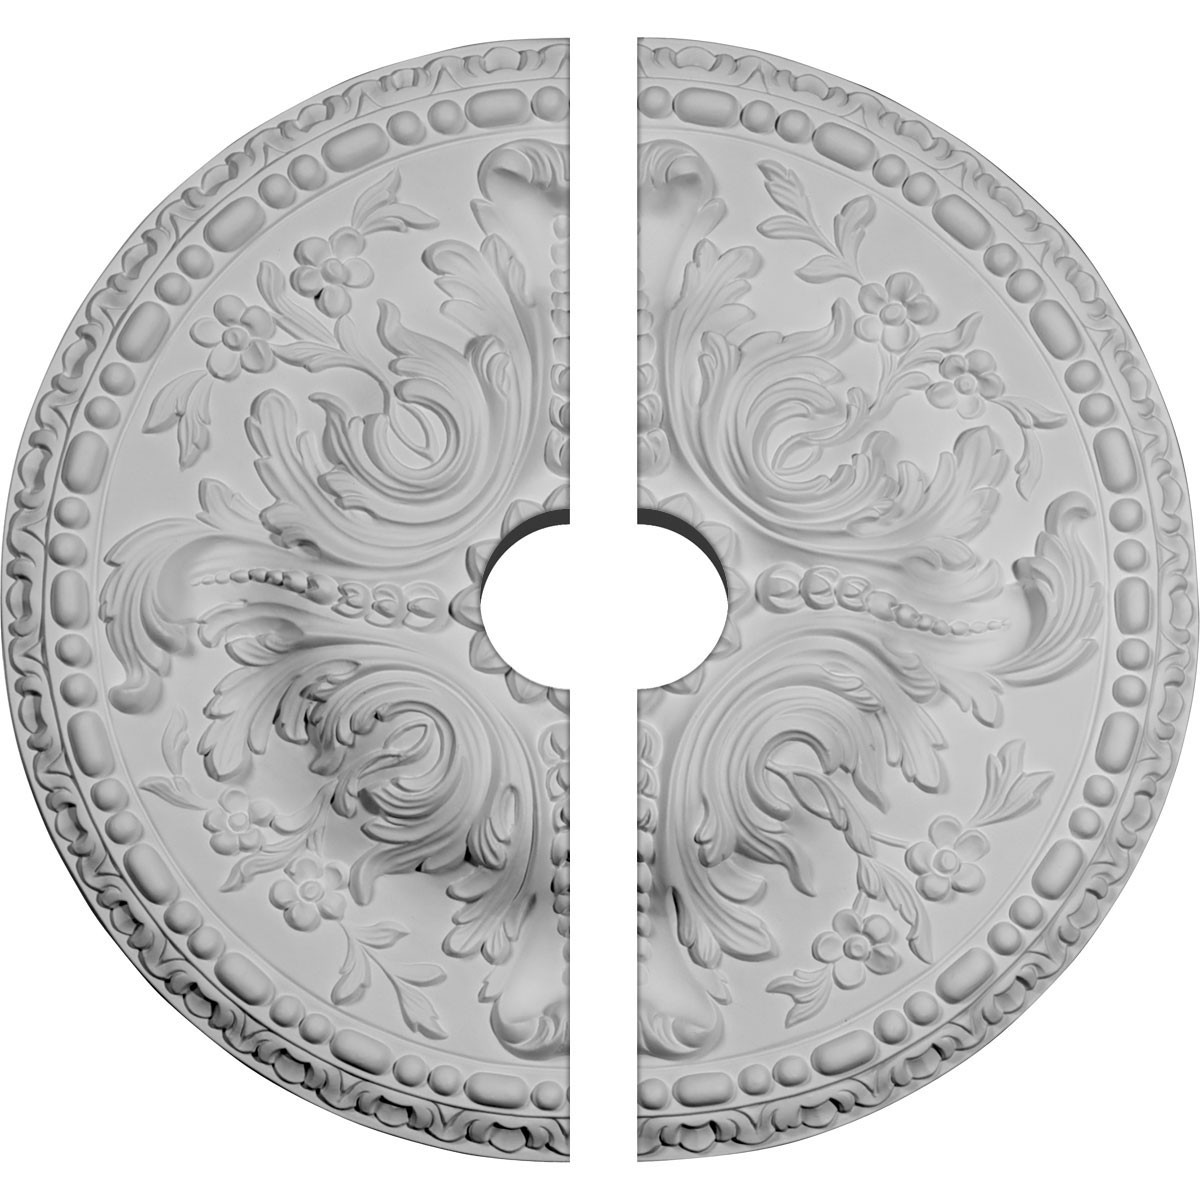 "EM-CM20AM2-03500 - 19 5/8""OD x 3 1/2""ID x 3/4""P Amelia Ceiling Medallion, Two Piece (Fits Canopies up to 3 1/2"")"